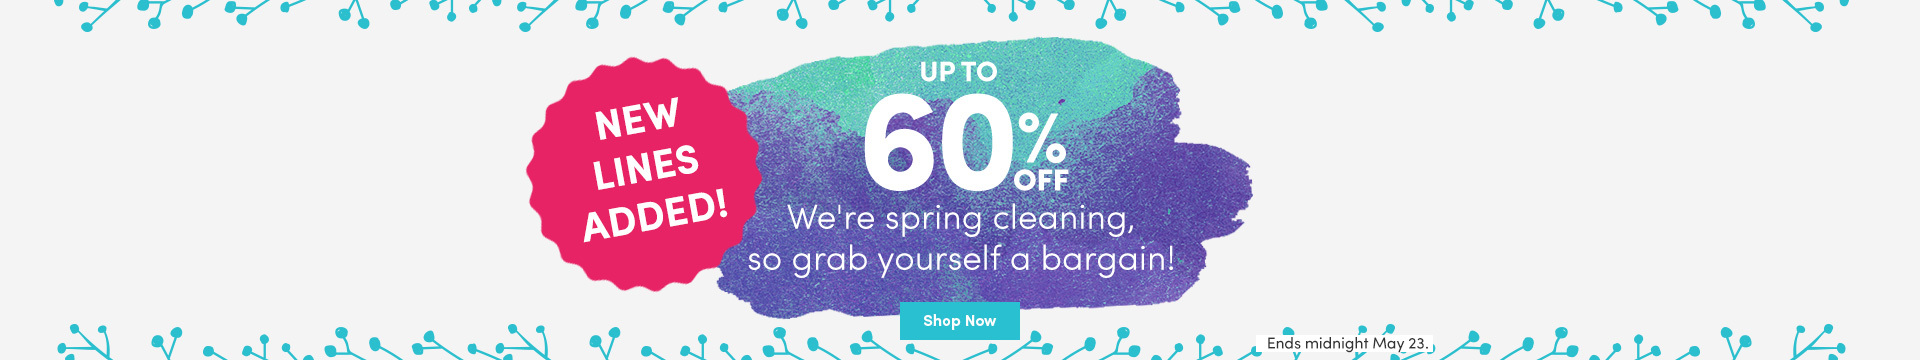 LK Marketing WW- Spring Cleaning sale CO